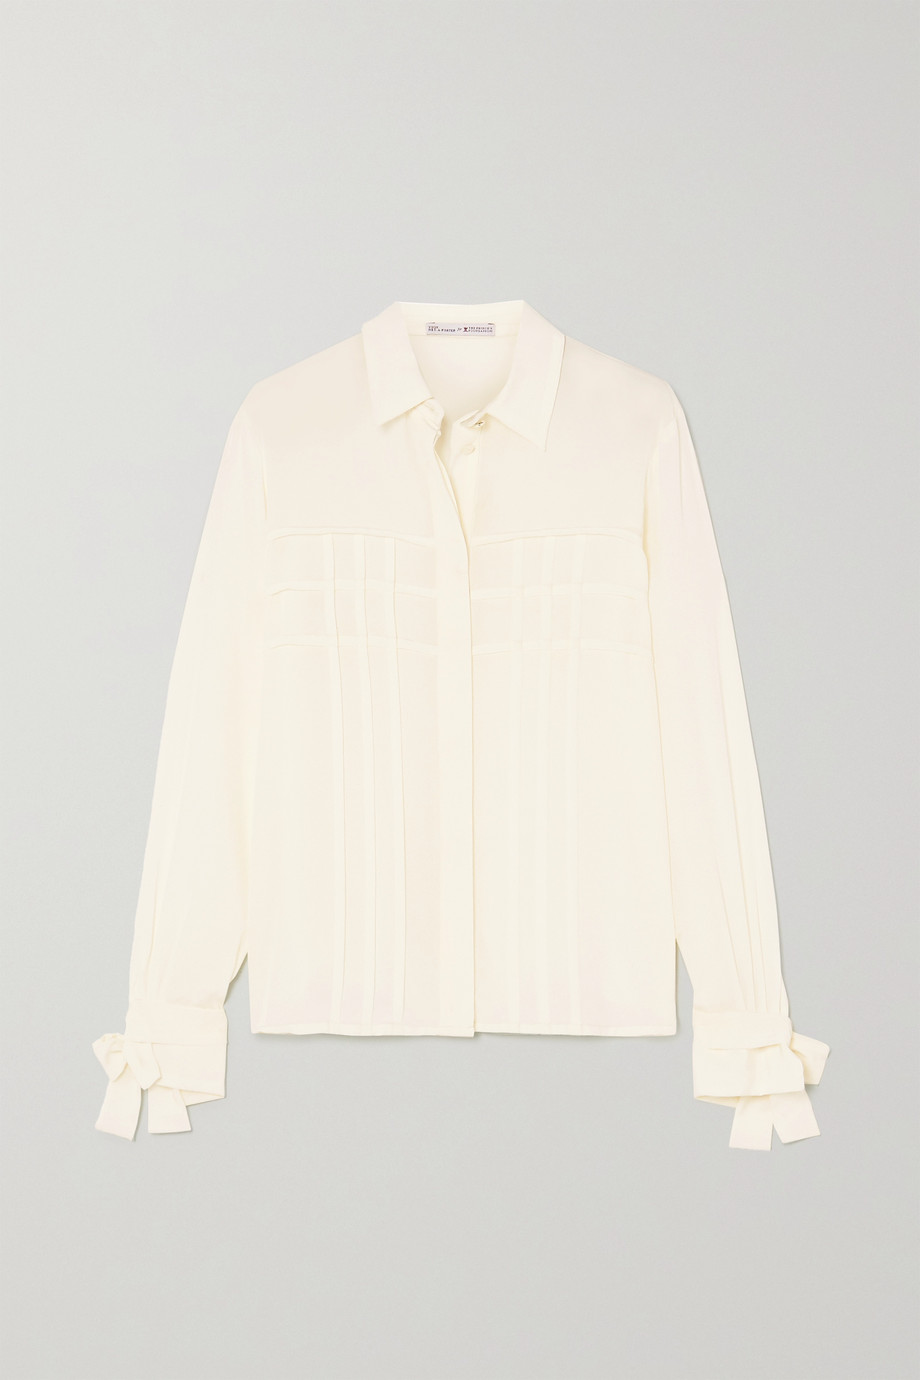 YOOX NET-A-PORTER FOR THE PRINCE'S FOUNDATION Pleated organic silk shirt